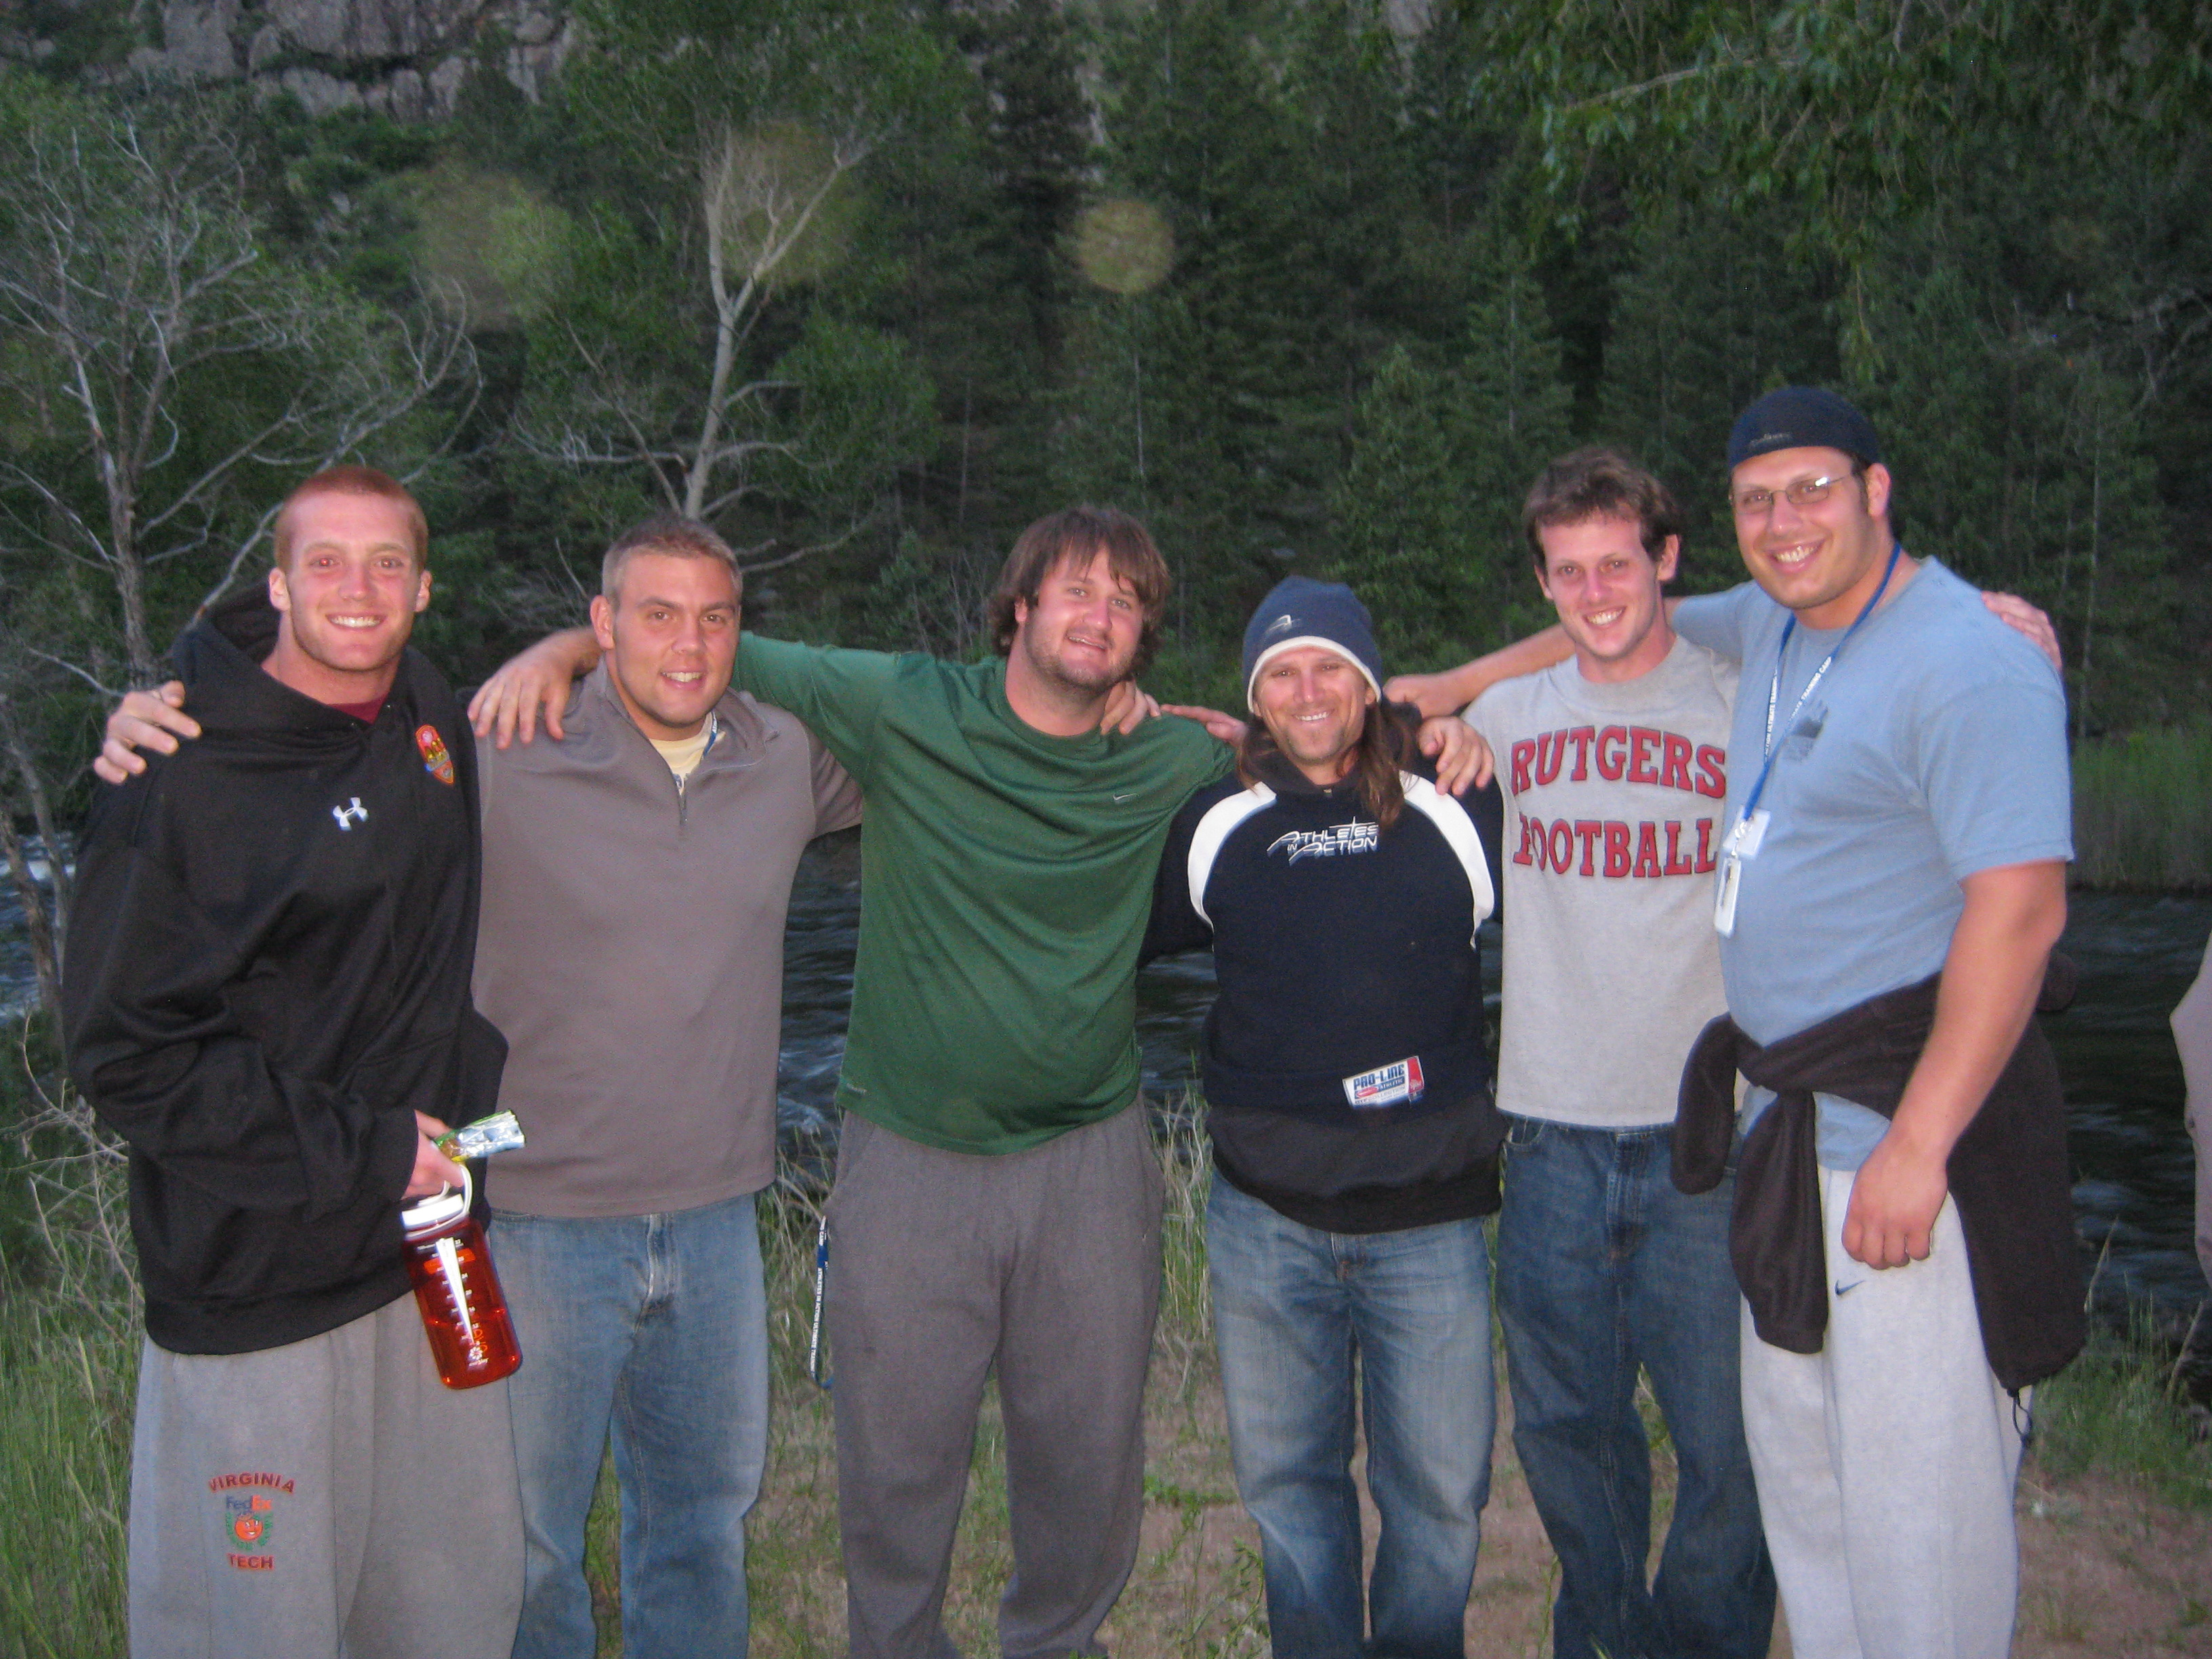 My Small Group Collin, Chris, Dan, Me, Billy And Mark